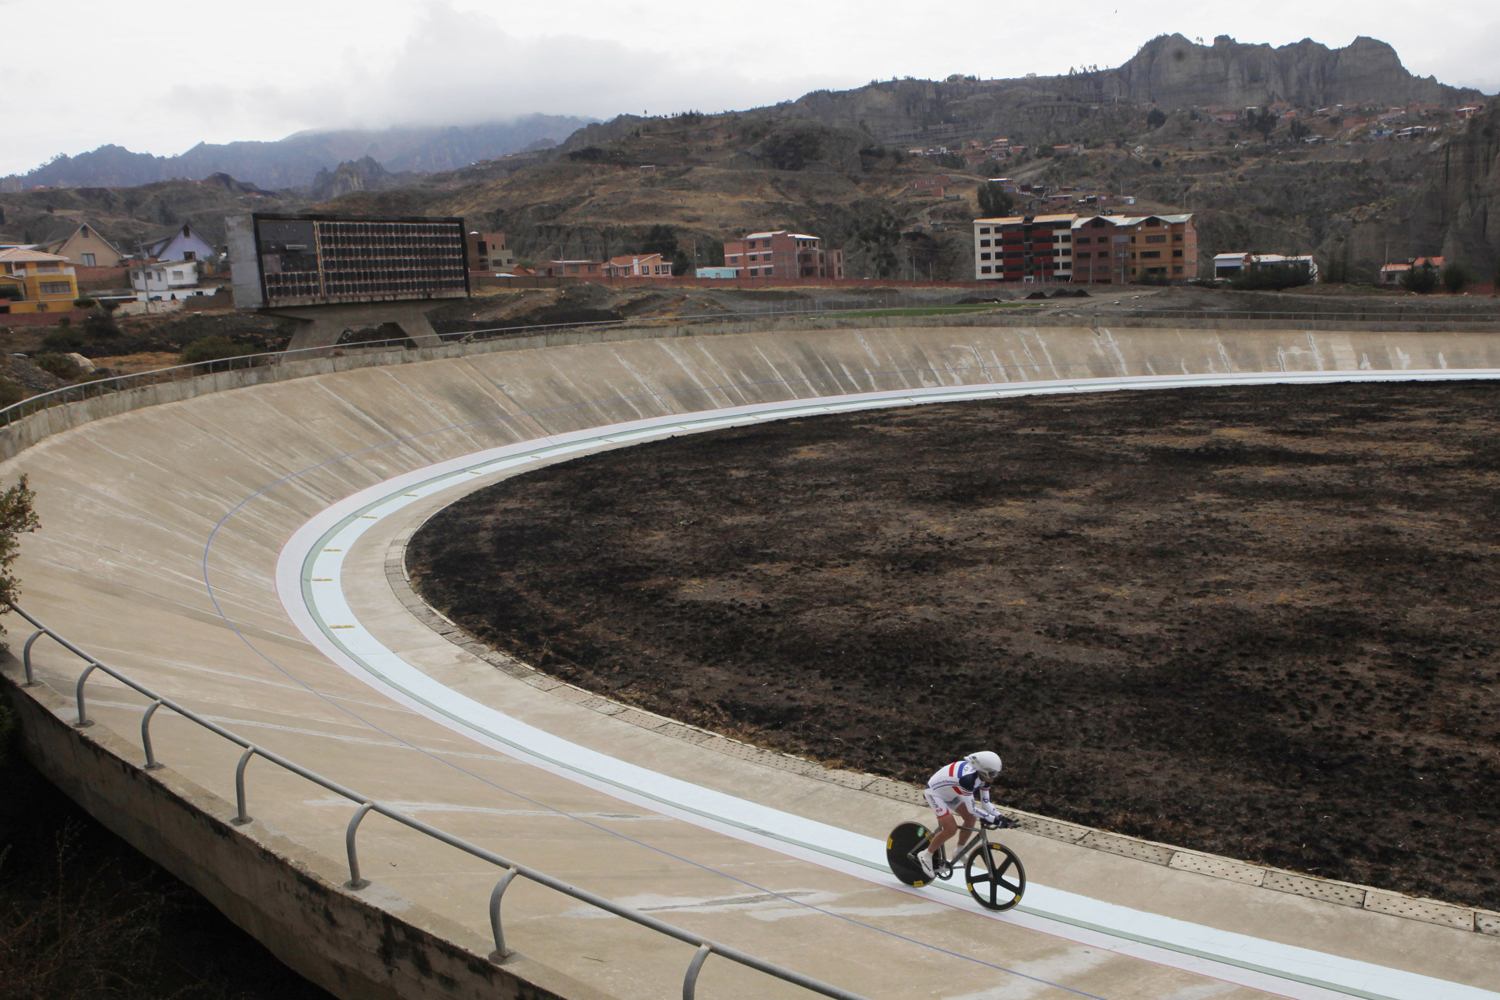 Aug. 31, 2014. French cyclist Claude Bares, rides on his bicycle at the Alto Irpavi velodrome in La Paz, Bolivia. Bares, 75, raced 36 kms., 402 mts, and 55 cms. in an hour, trying to break his own world record in the 75-80 years category that he set last April in France.